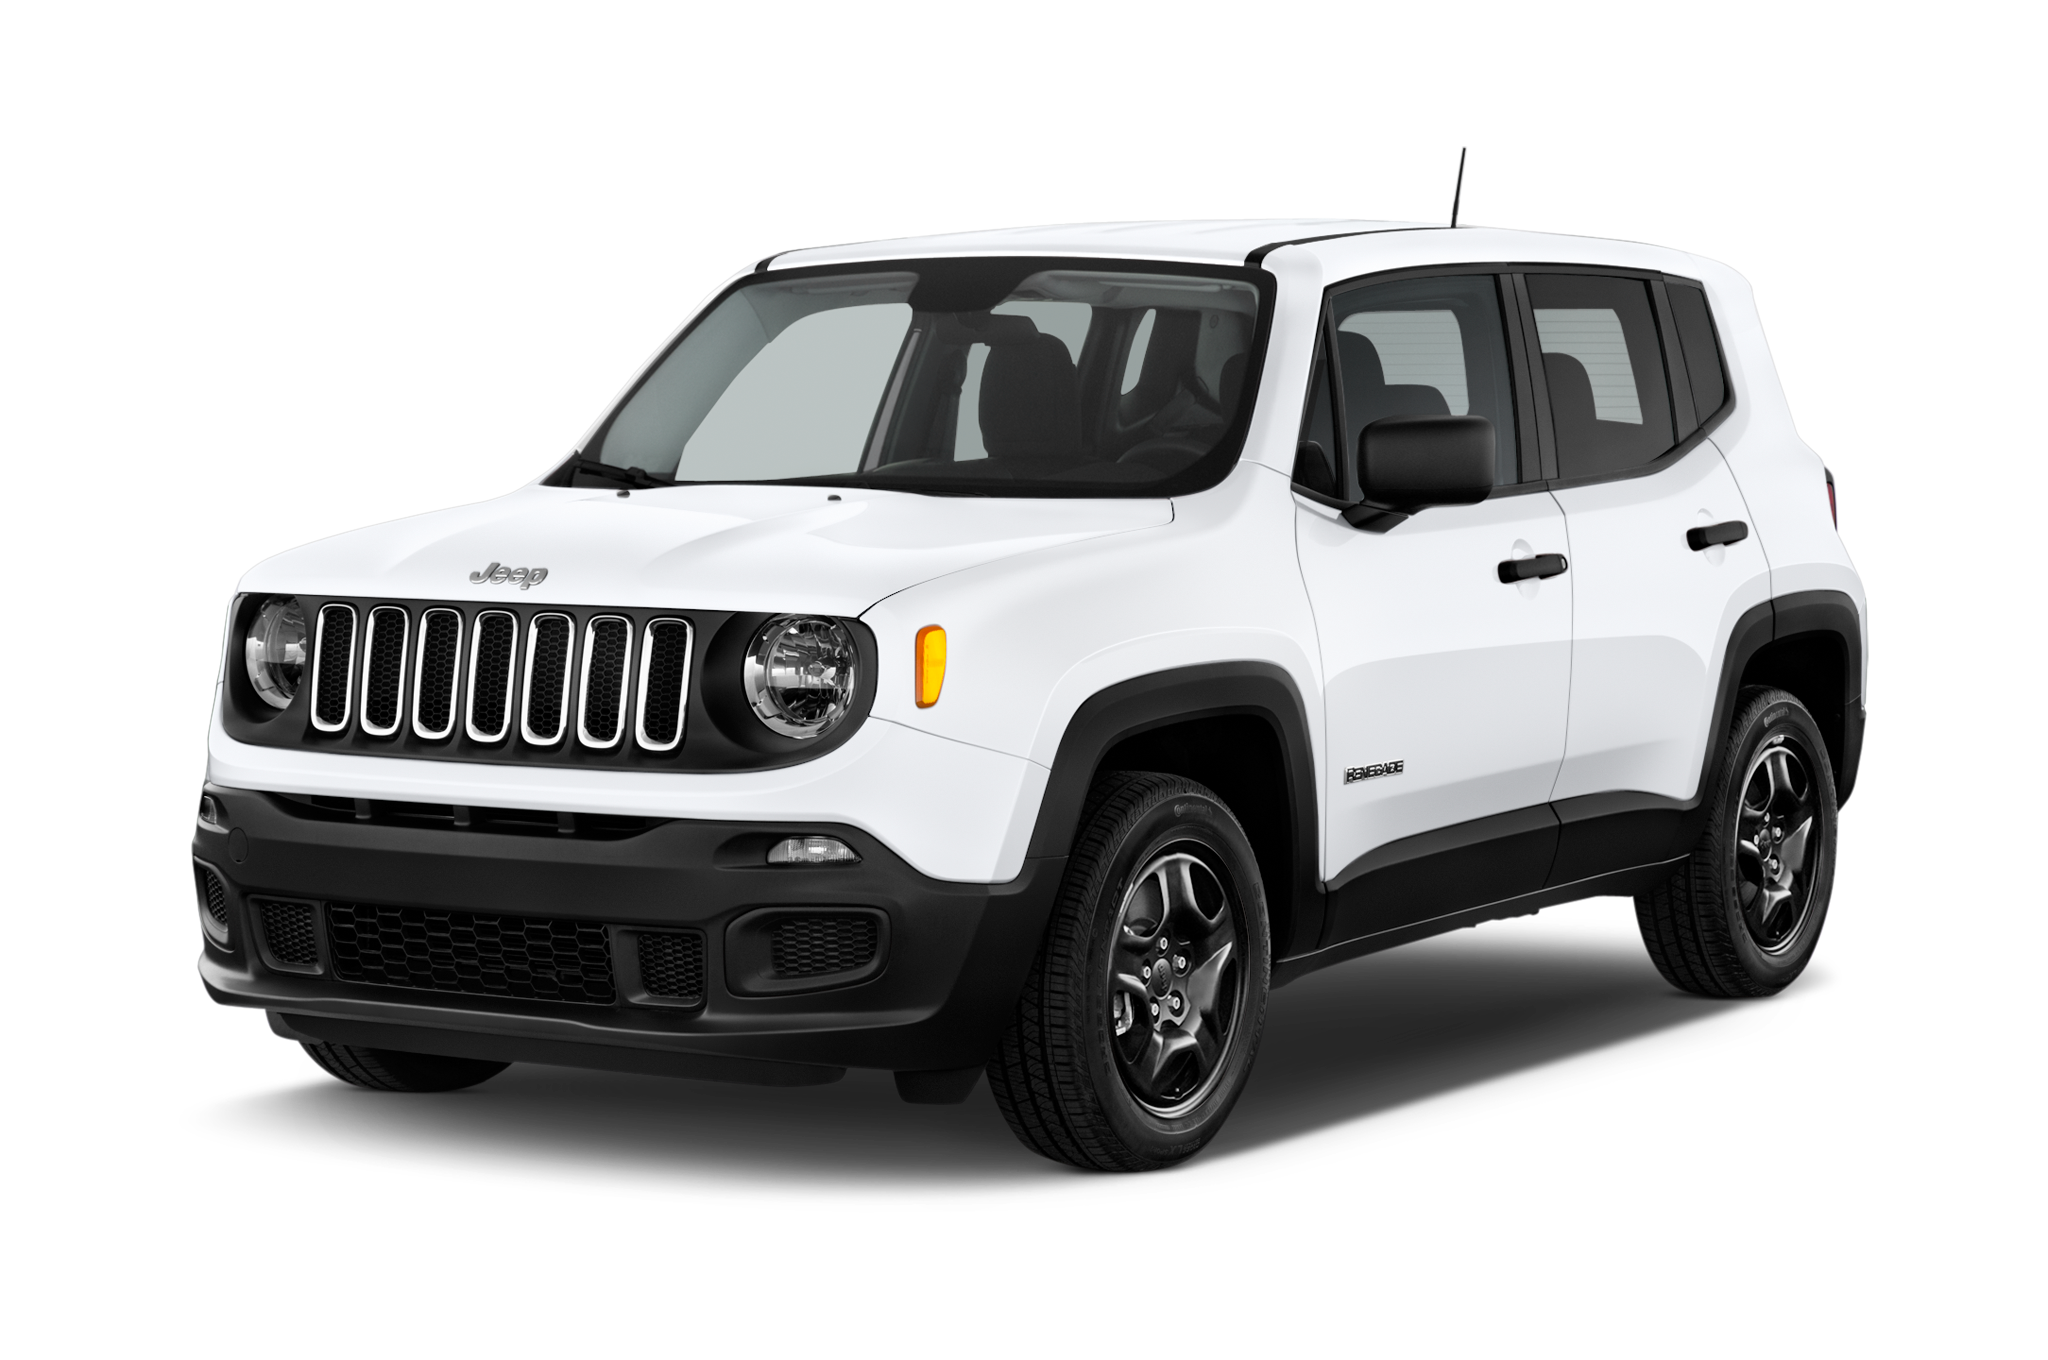 jeep renegade hell s revenge is inspired by harley davidson. Black Bedroom Furniture Sets. Home Design Ideas